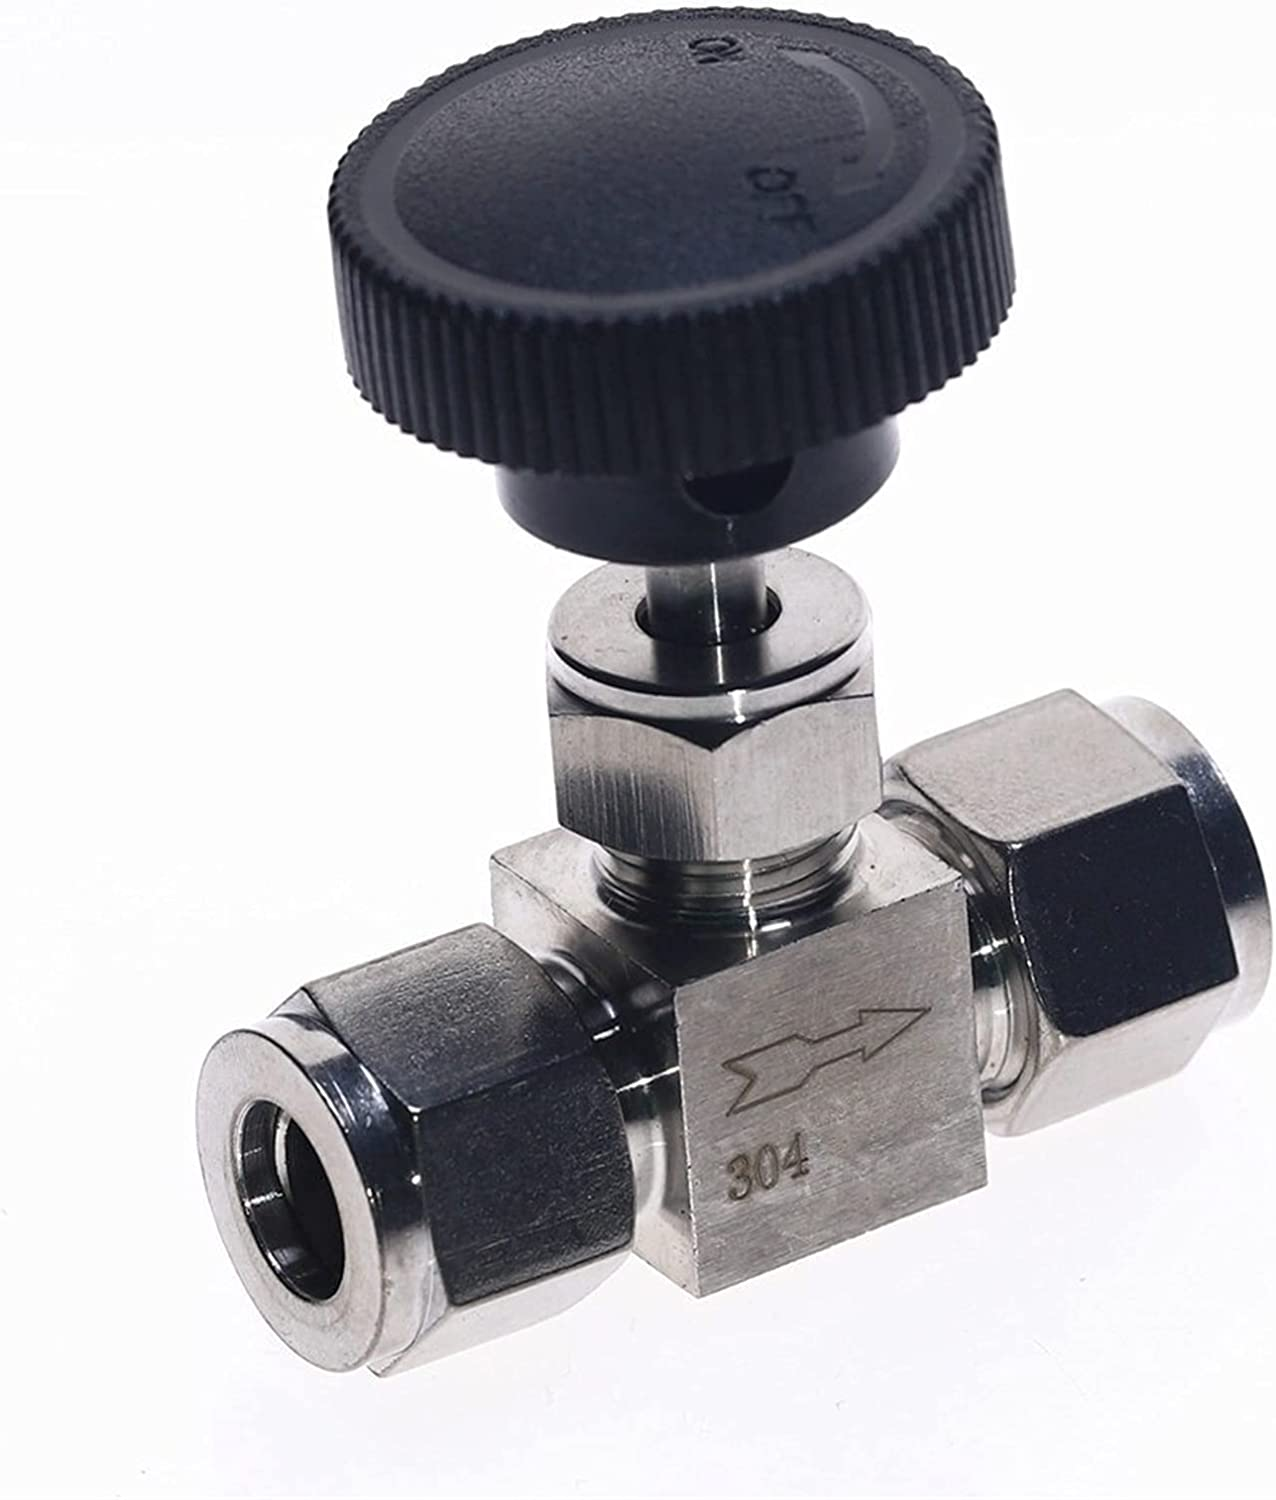 VALVE STAINLESS STEEL ADJUSTABLE NEEDLE BALL VALVE FOR WATER OIL AIR GAS FUEL LINE SHUTOFF (SIZE : 4MM)